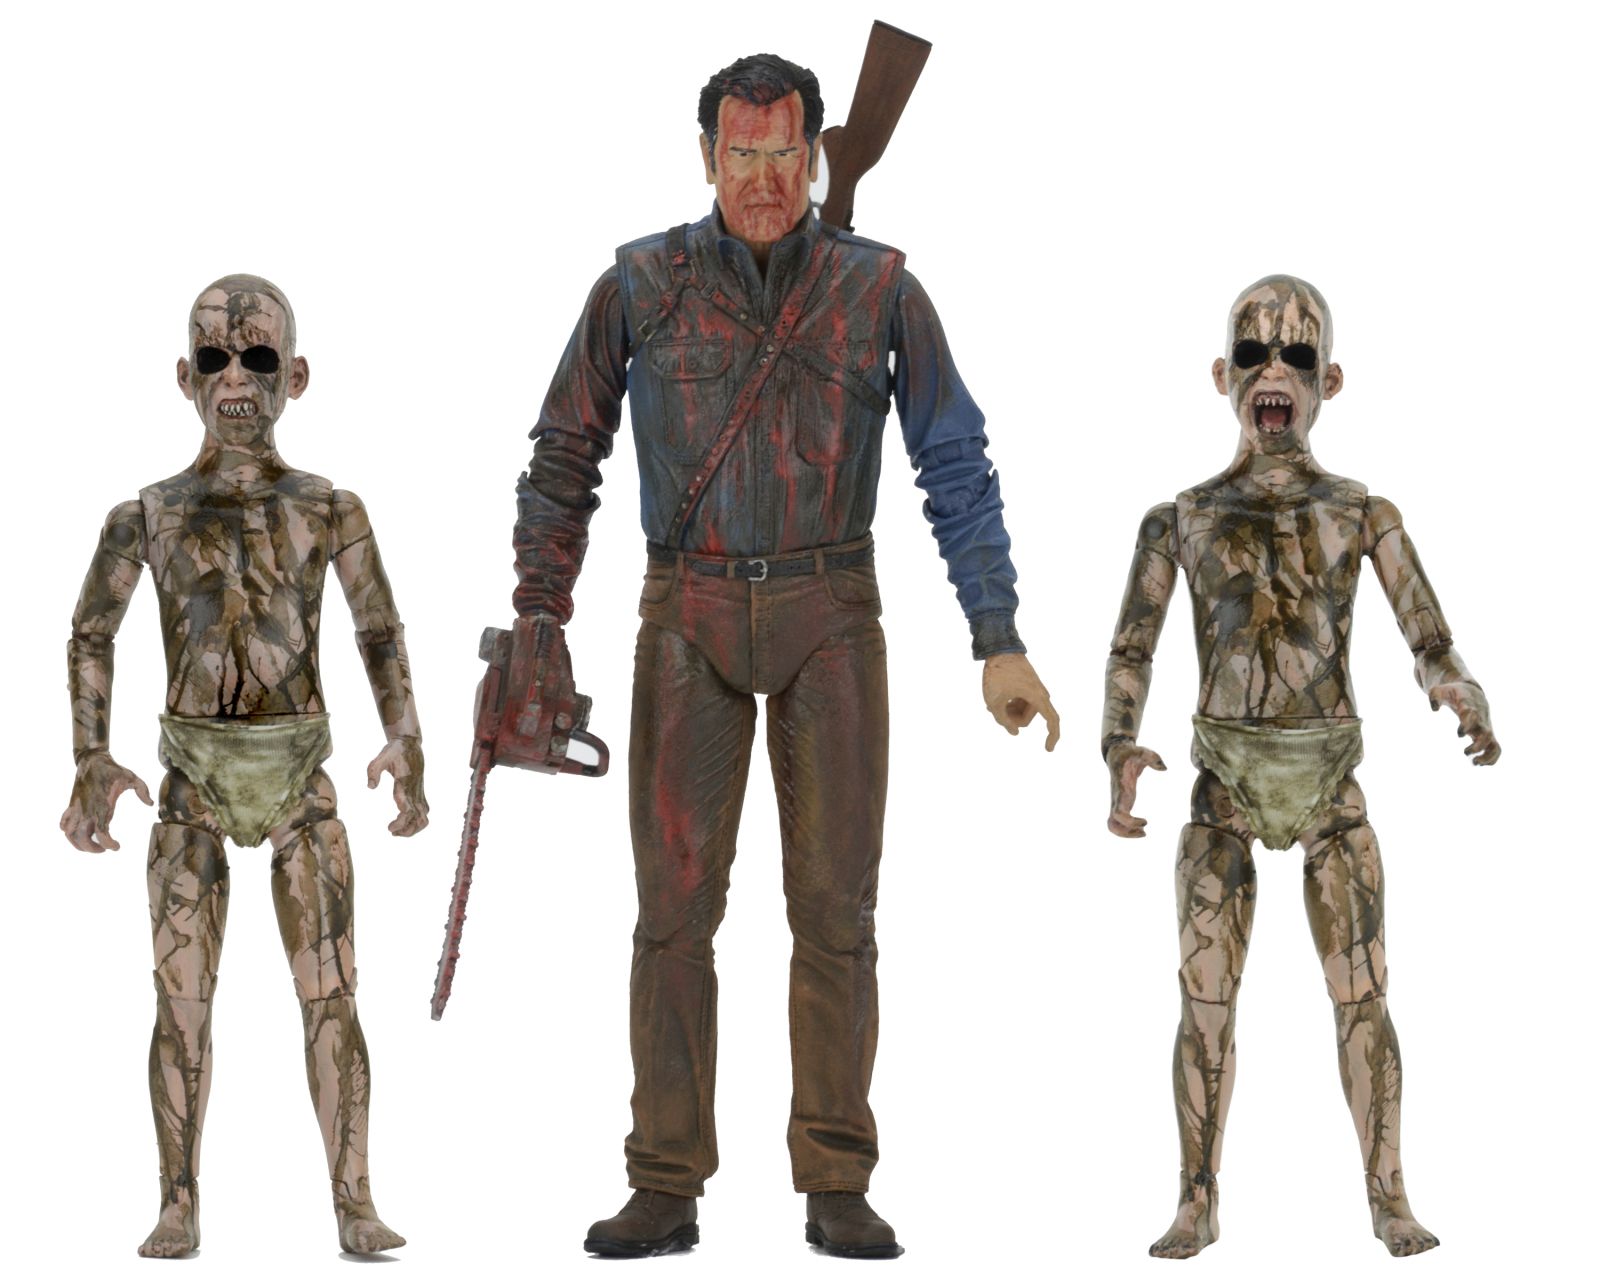 "Ash vs Evil Dead 7"" Scale Action Figure – Bloody Ash vs Demon Spawn 3 Pack by Neca"